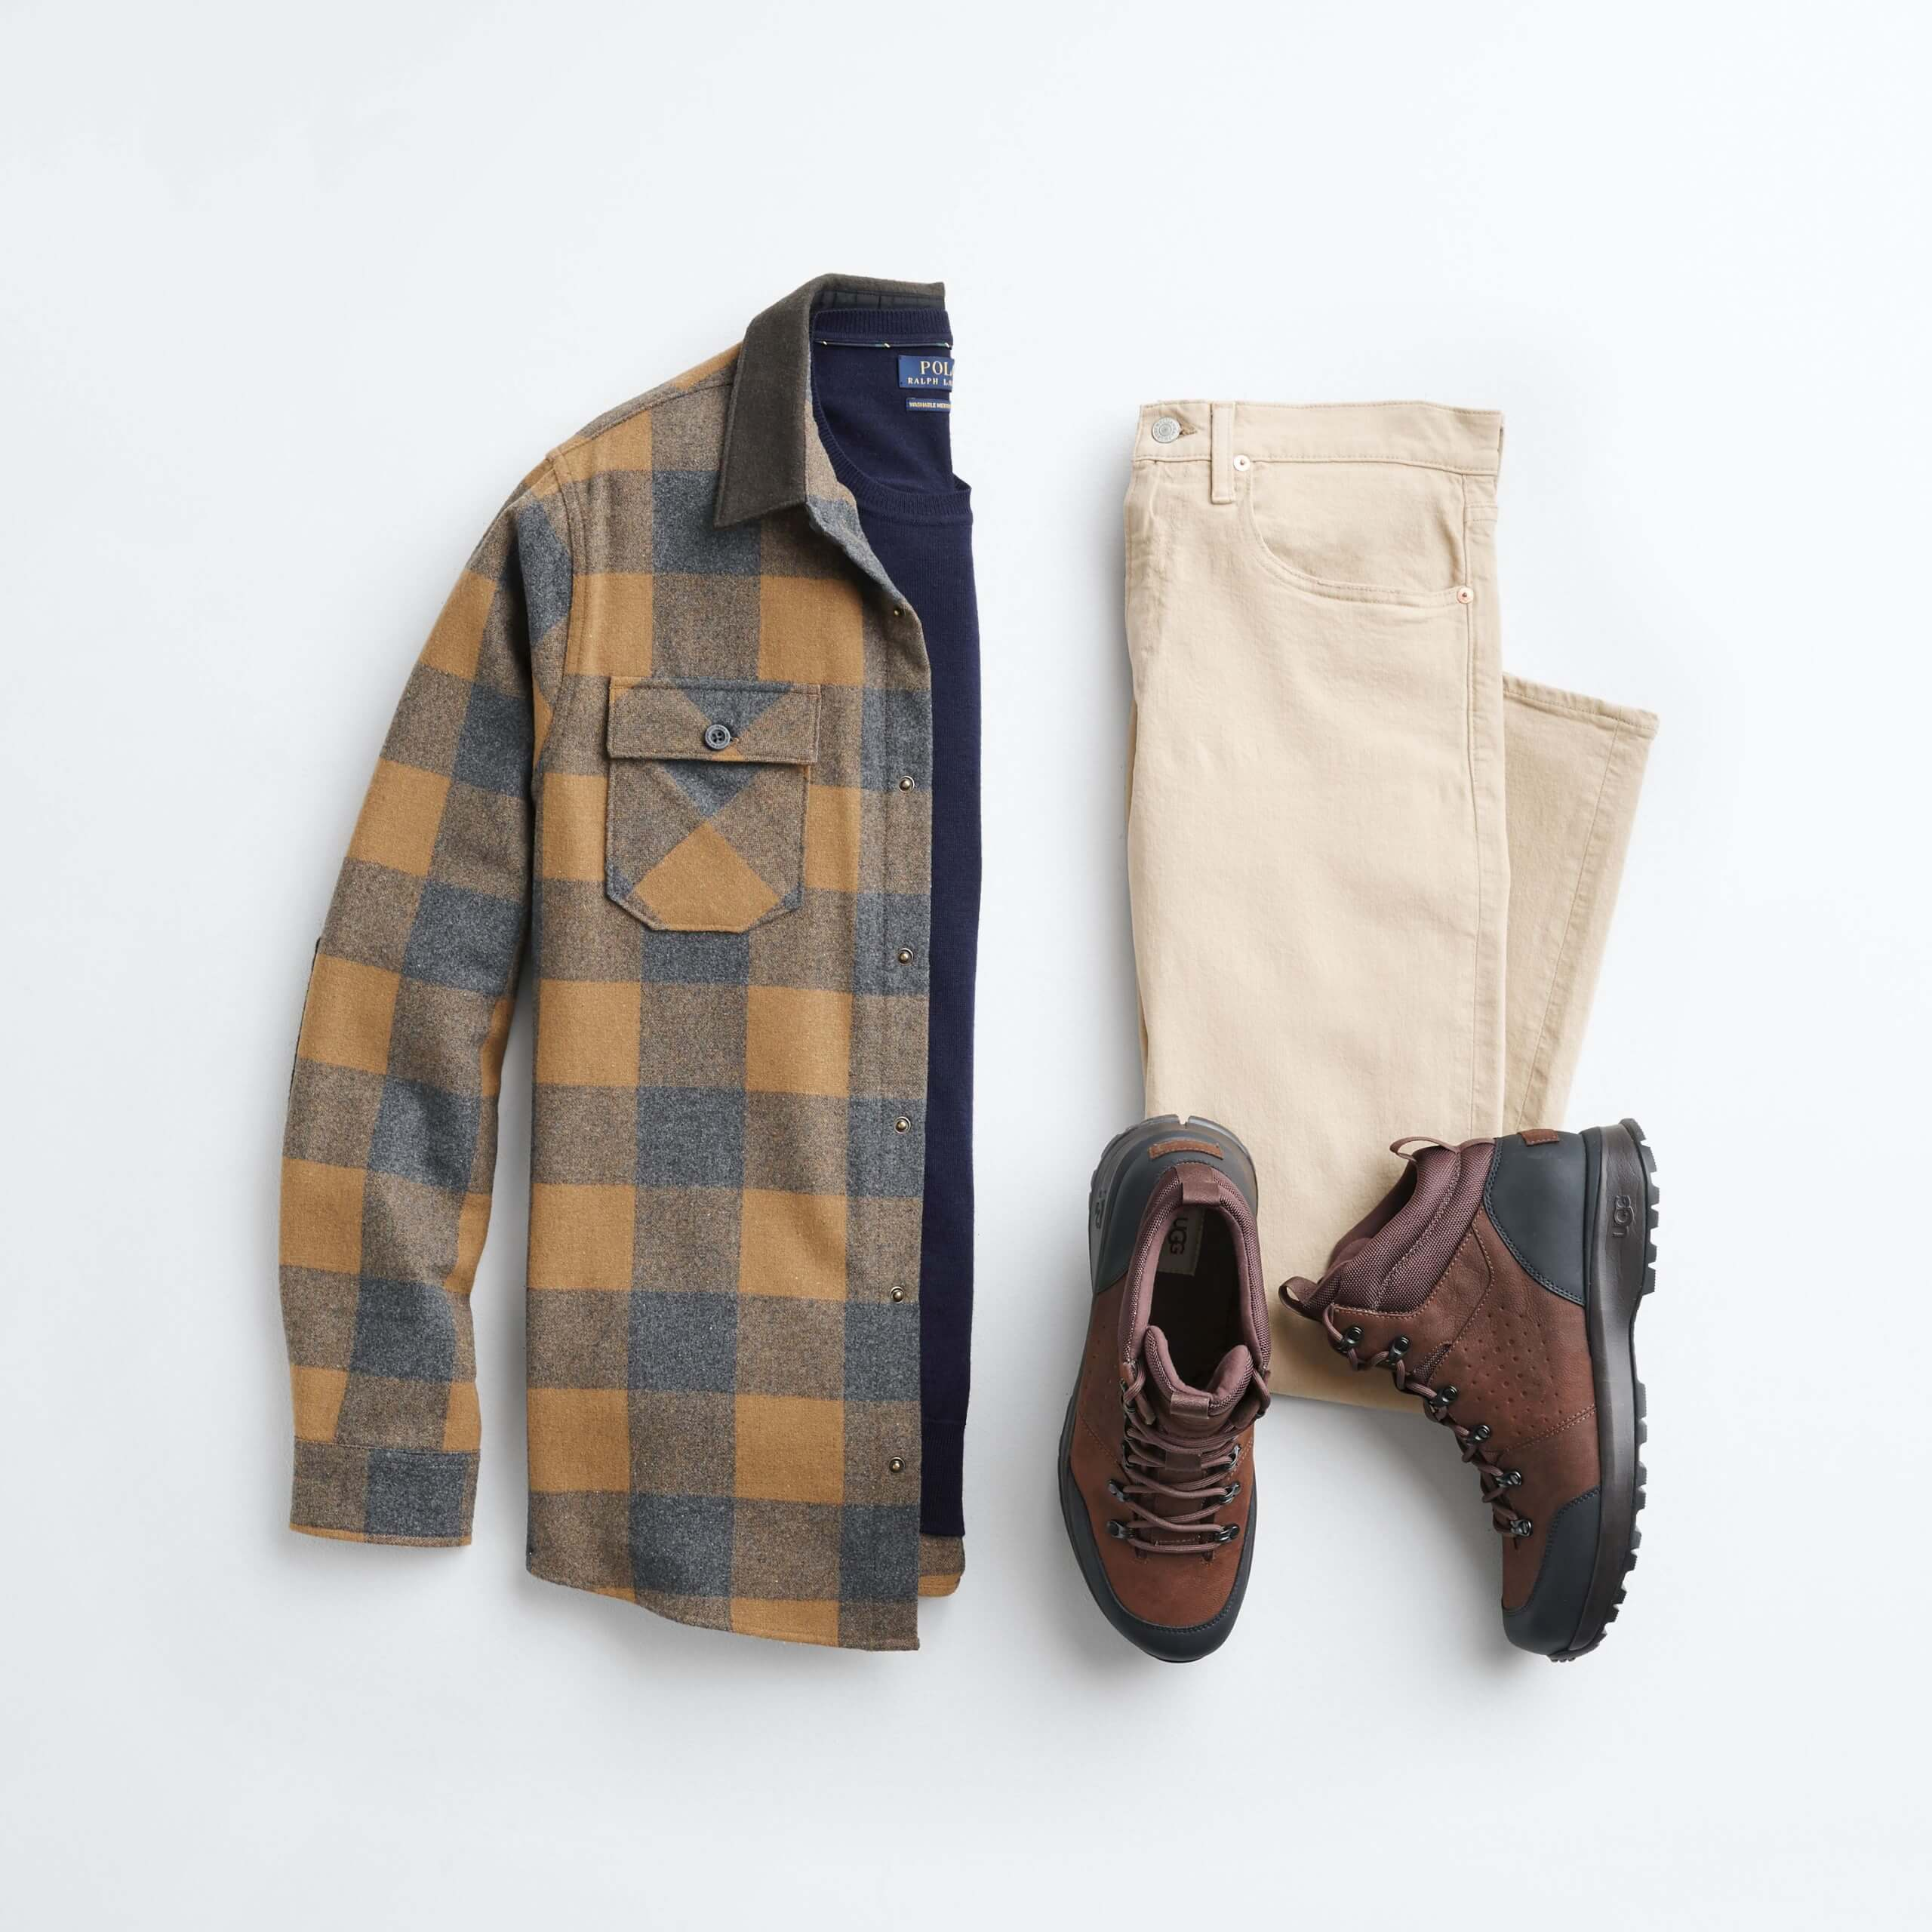 Stitch Fix Men's outfit laydown featuring mustard flannel over navy crewneck sweater, khaki jeans and brown hiker boots.